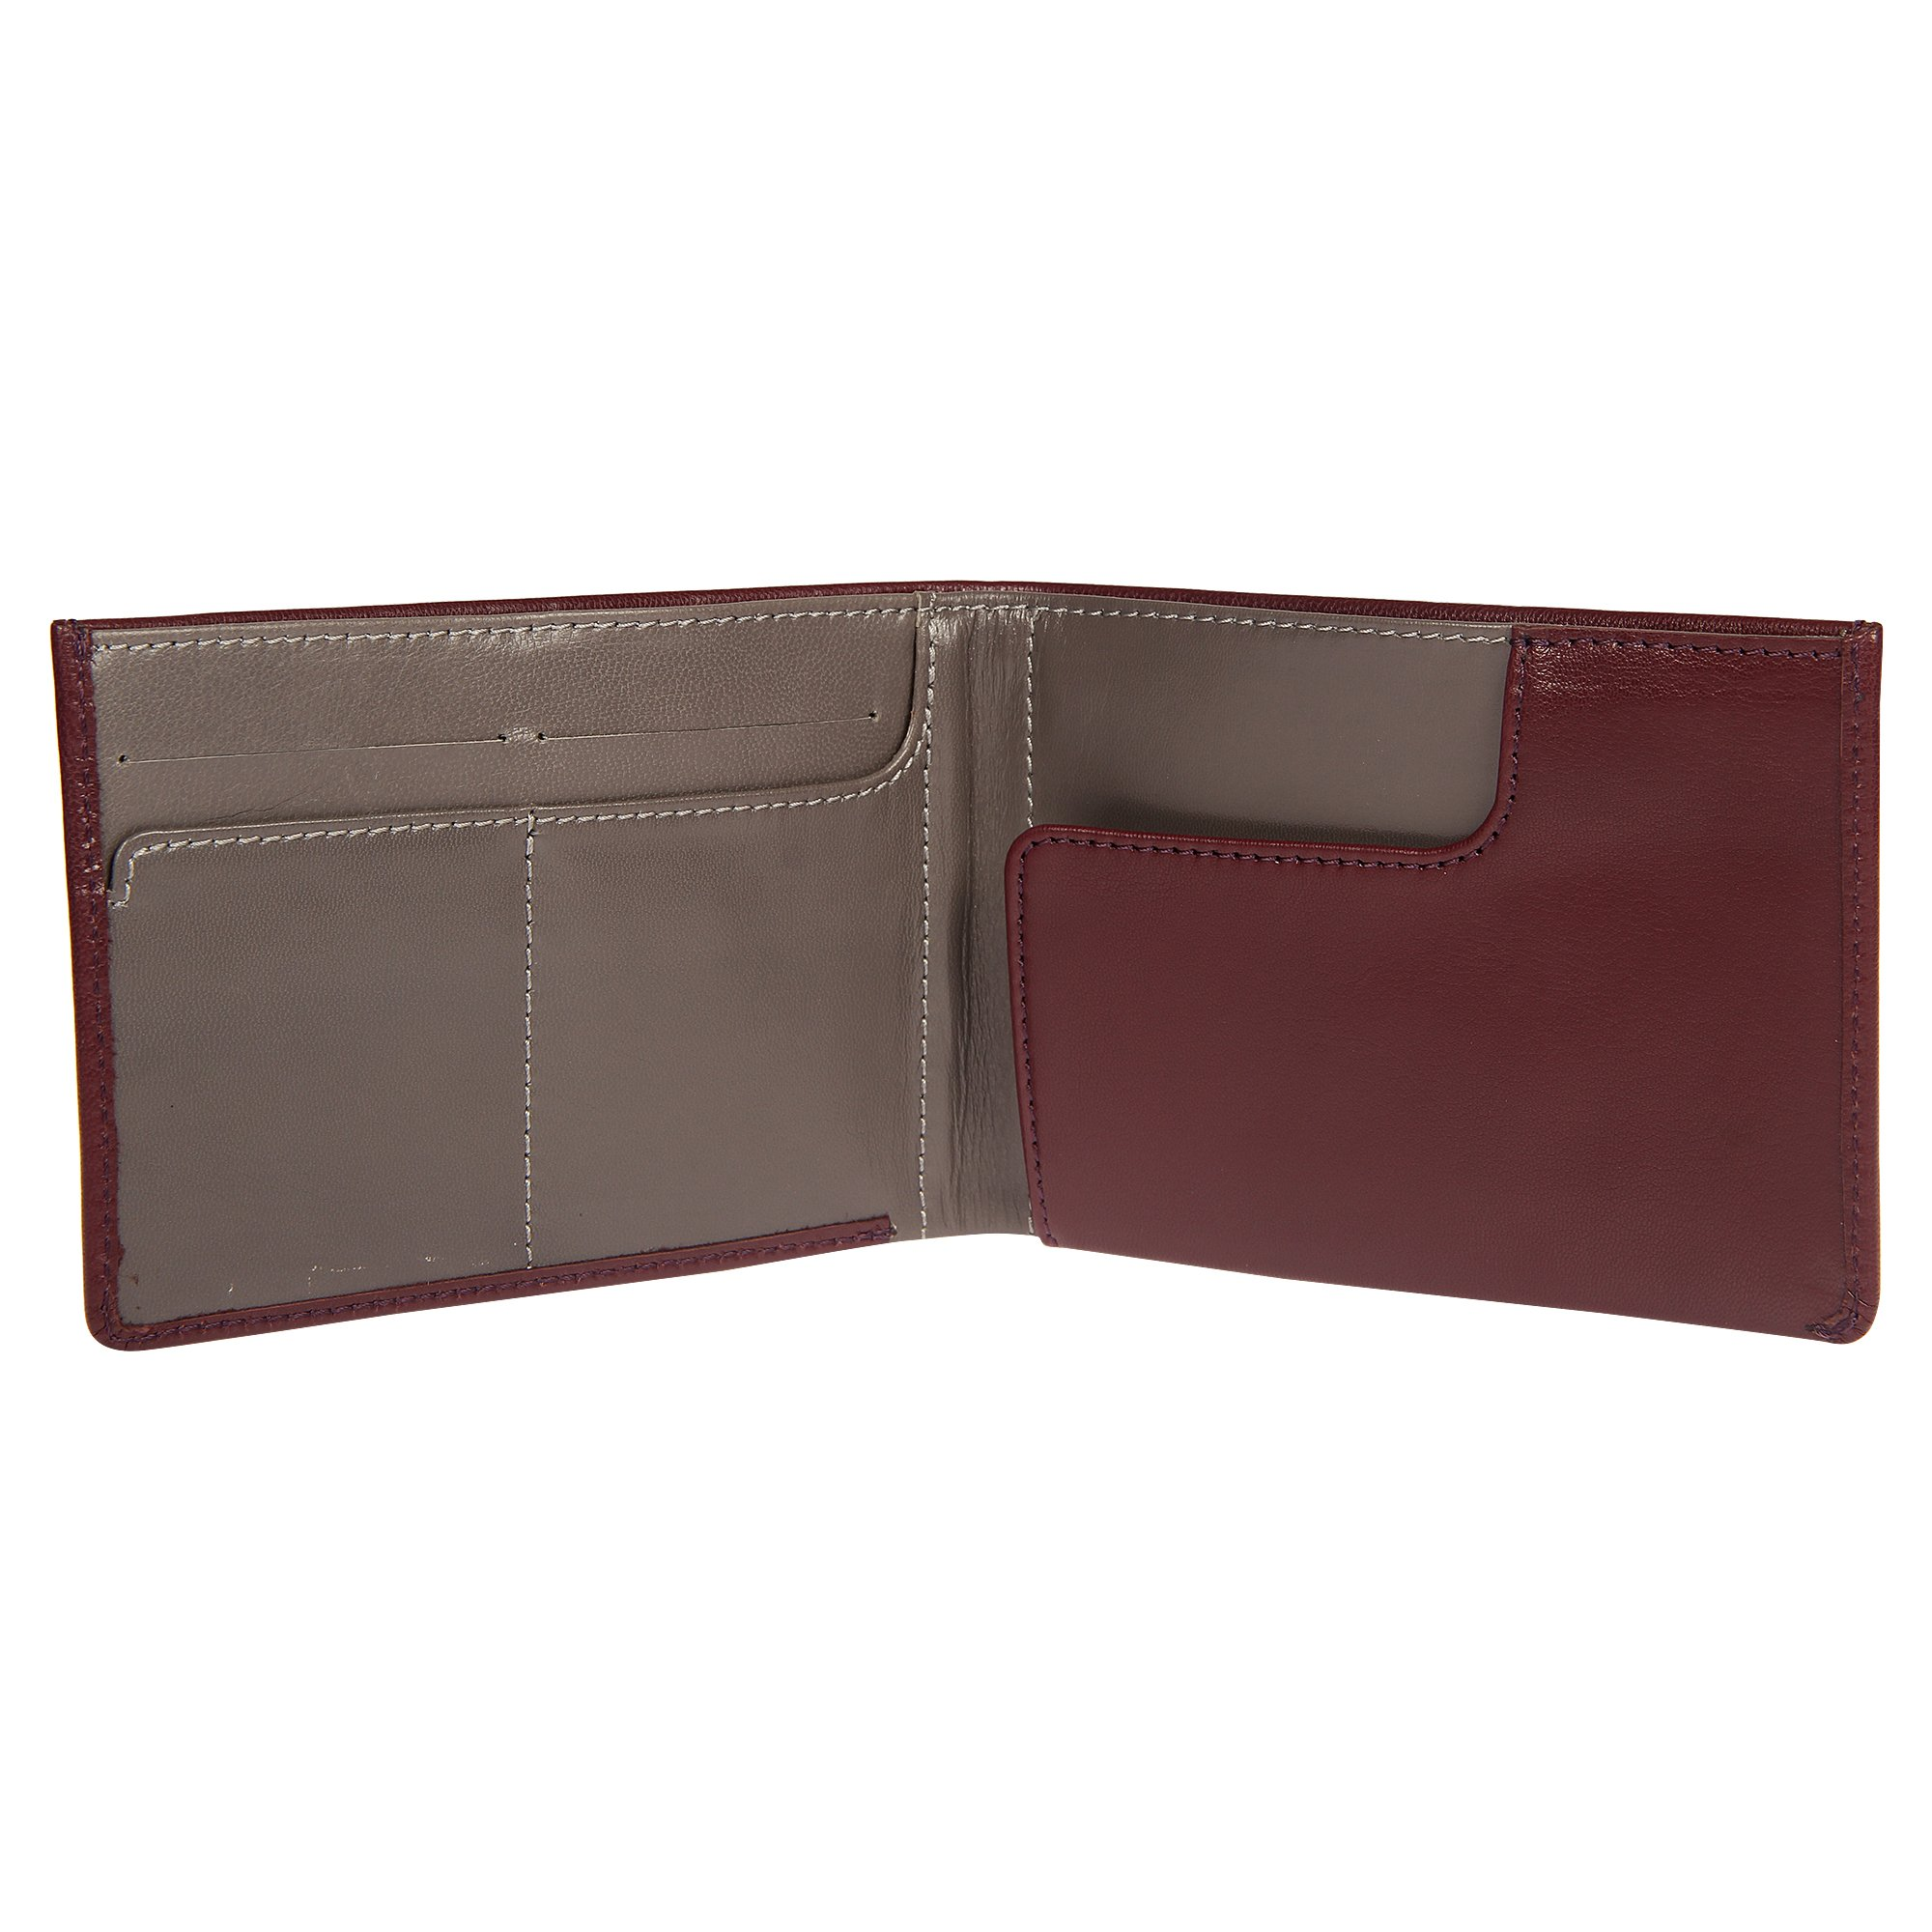 Genuine Sheep Leather RFID Blocking Travel Wallet & Passport Holder for Men and Women - Mocha